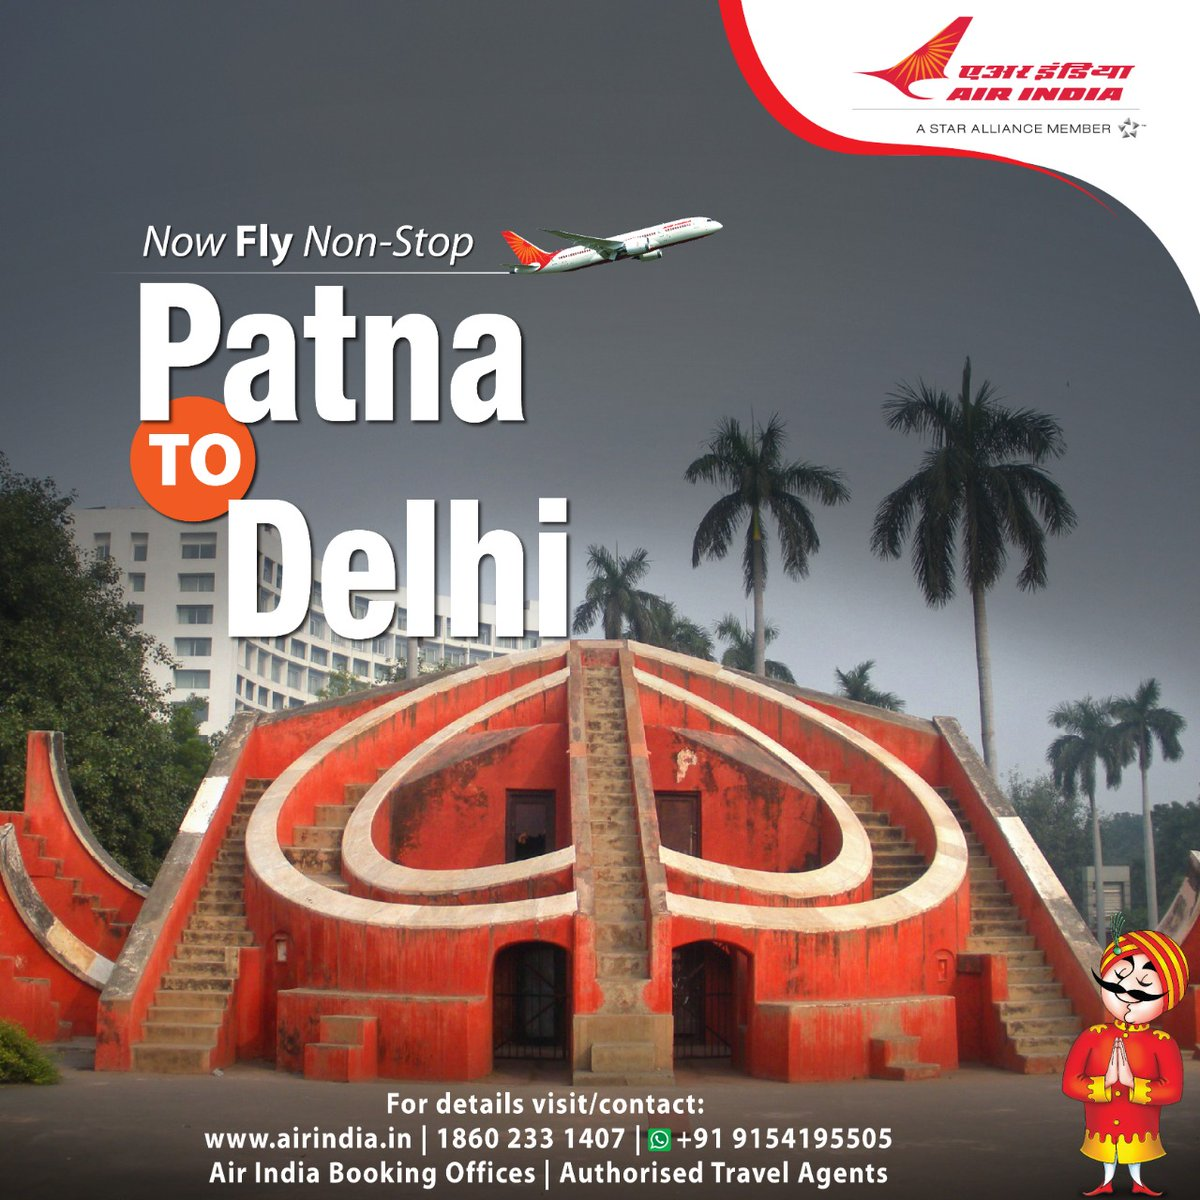 #FlyAI : Fly non-stop from Patna to Delhi.  To book seats, please visit our website